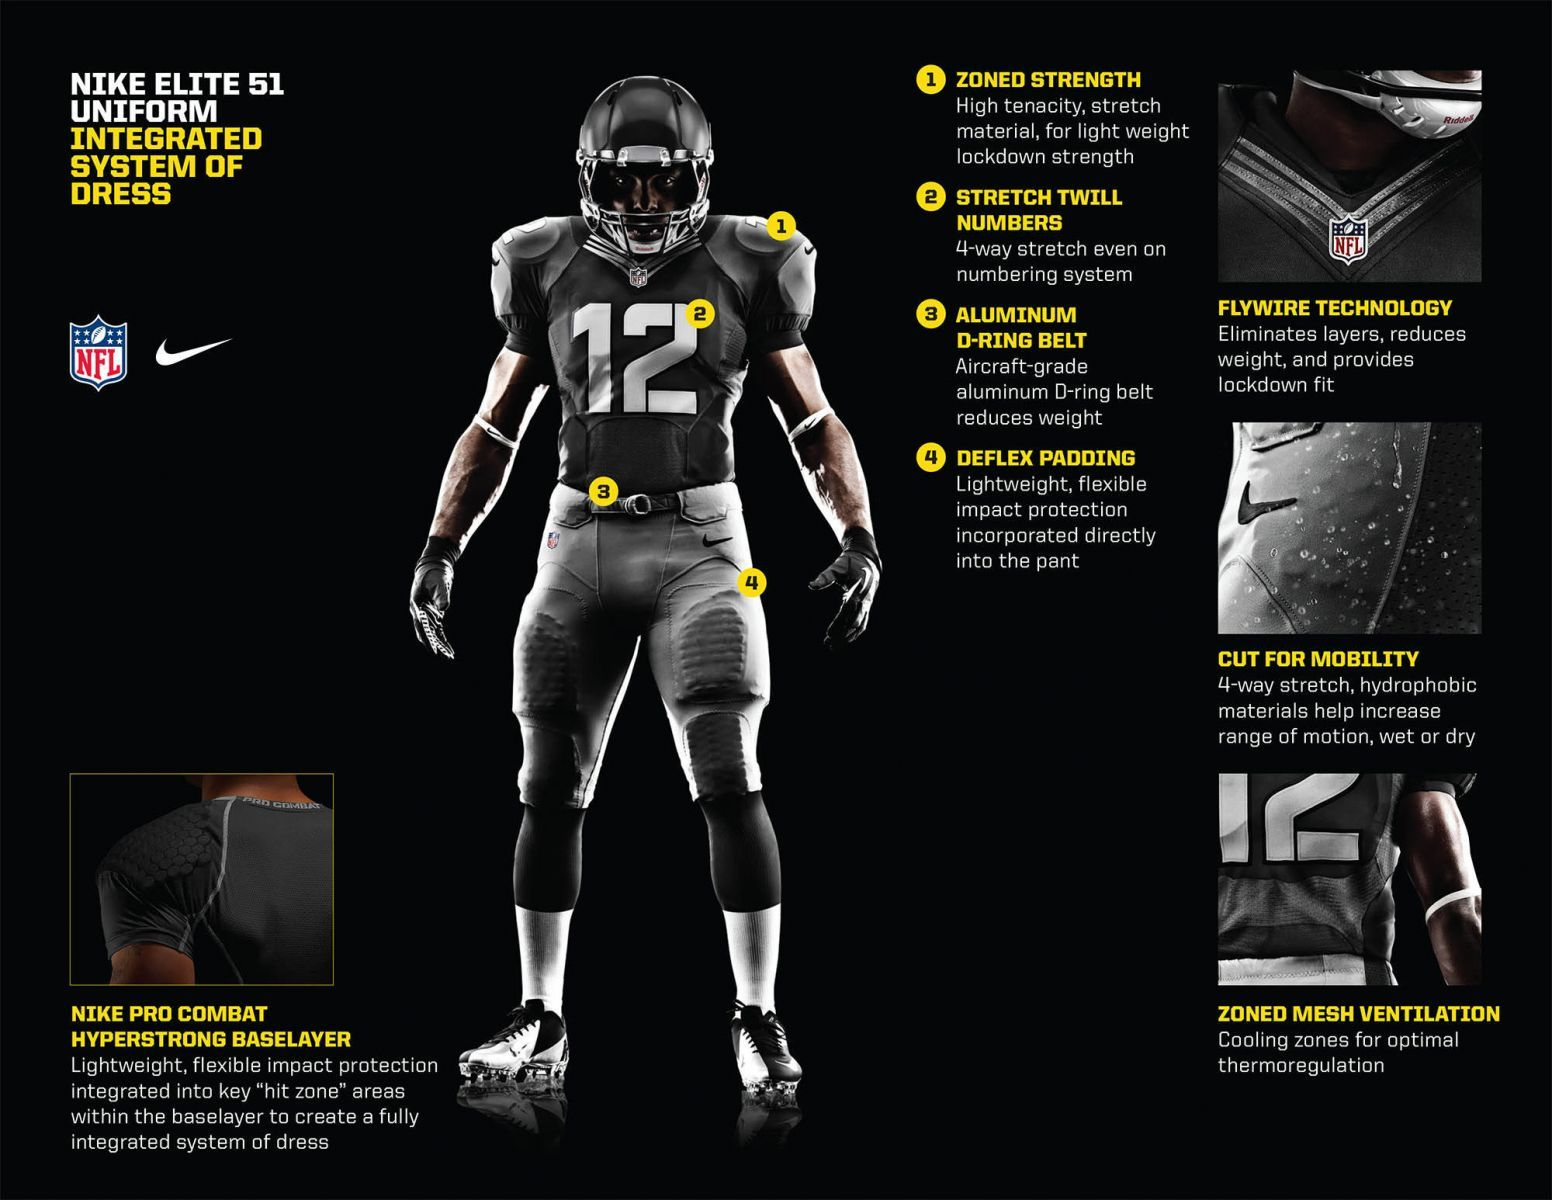 021ca2b4d Nike NFL 2012 Elite 51 Uniform Tech Sheet | PPT | Football uniforms ...